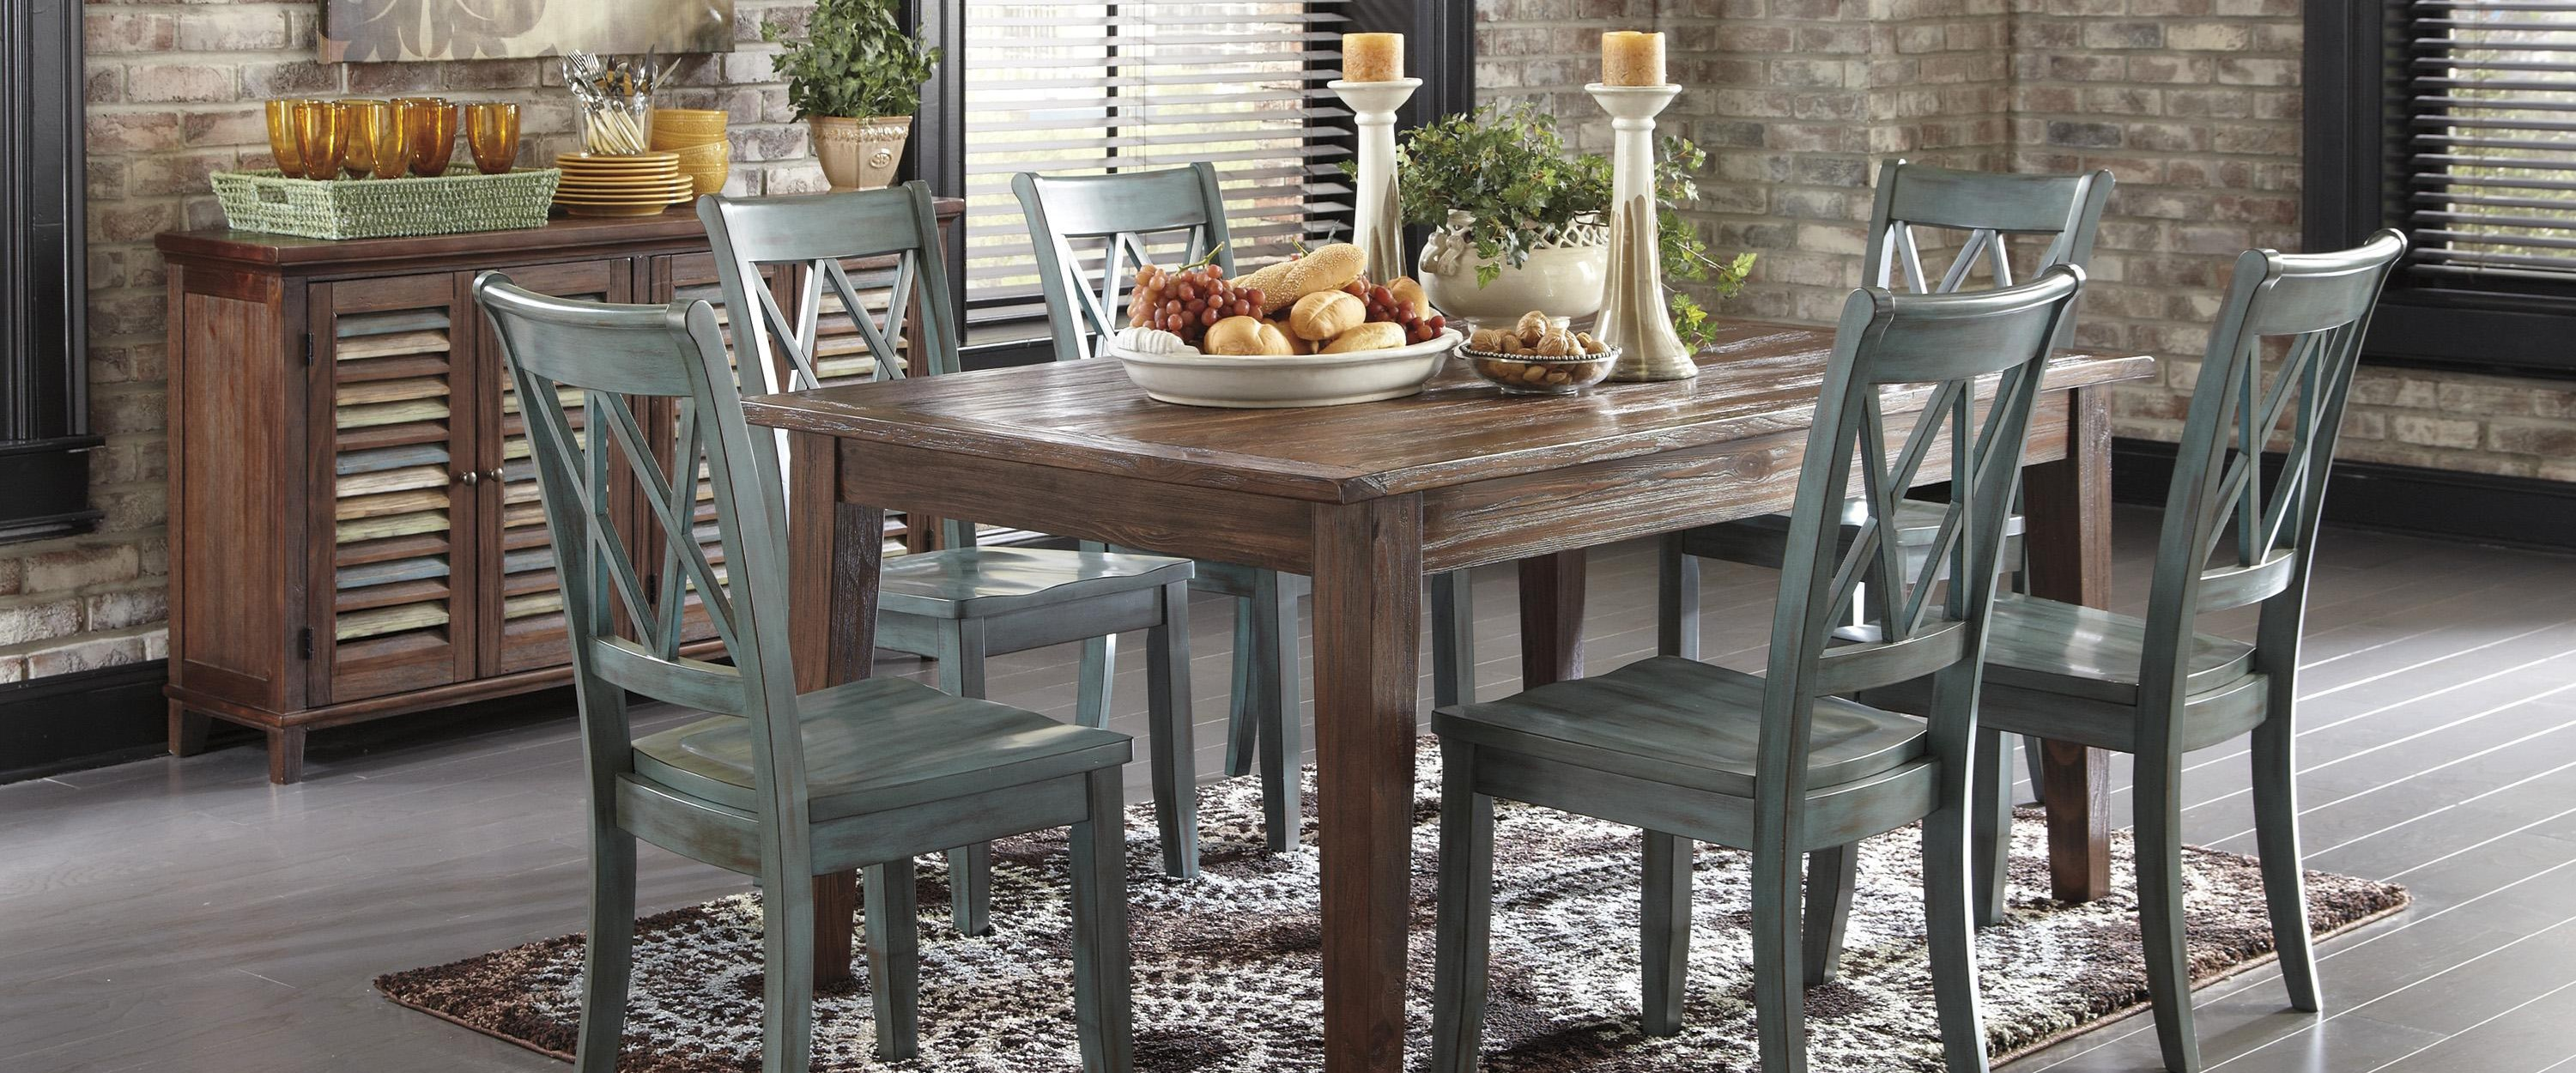 Hosting For The Holidays With Rifes Home Furniture